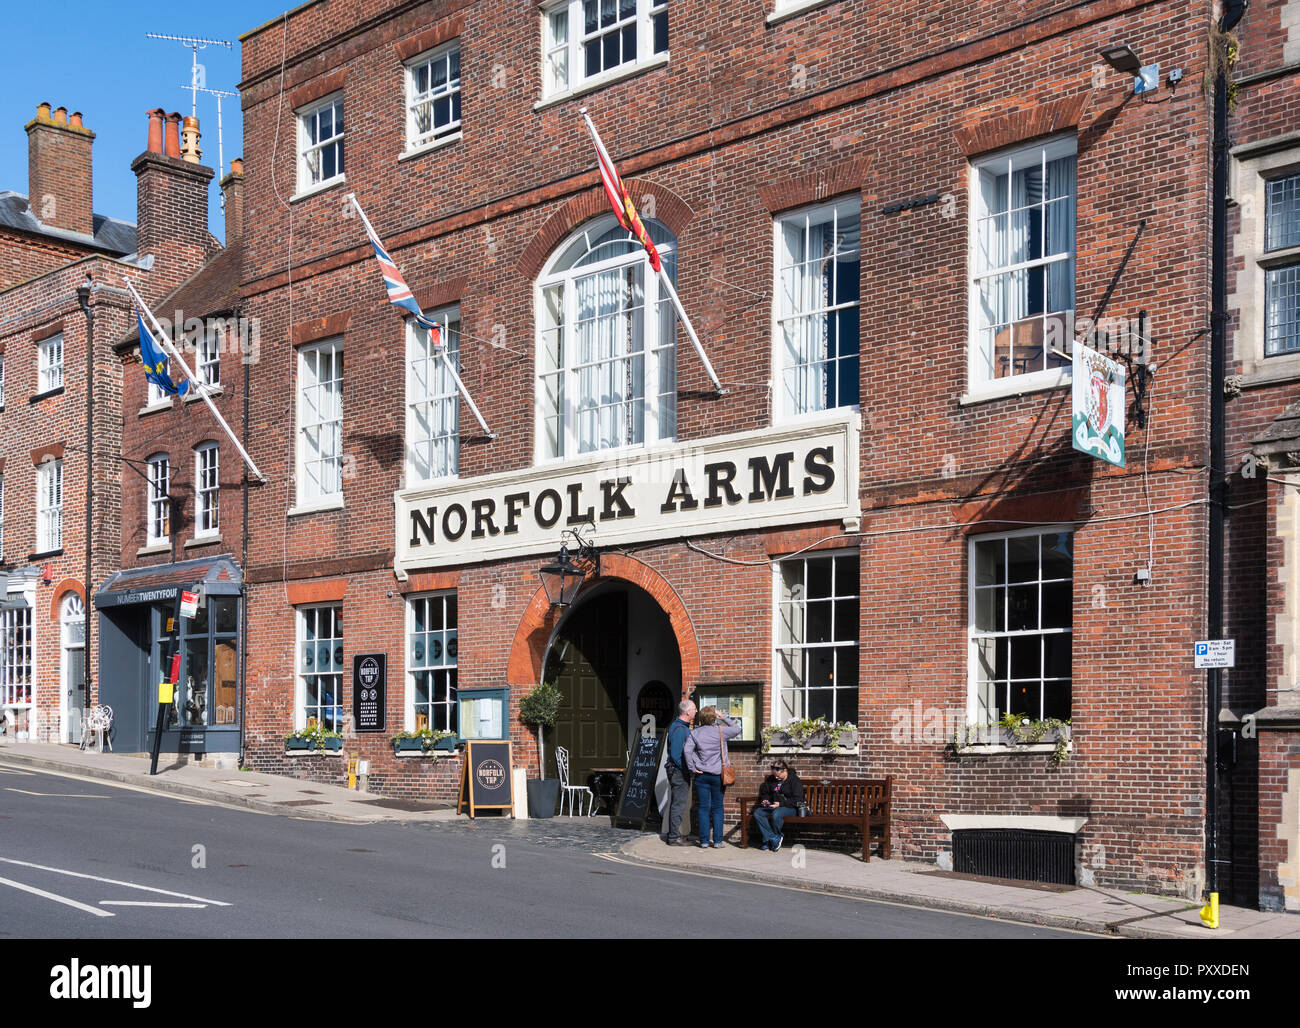 Norfolk Arms Hotel front entrance in the High Street in Arundel, West Sussex, England, UK. - Stock Image